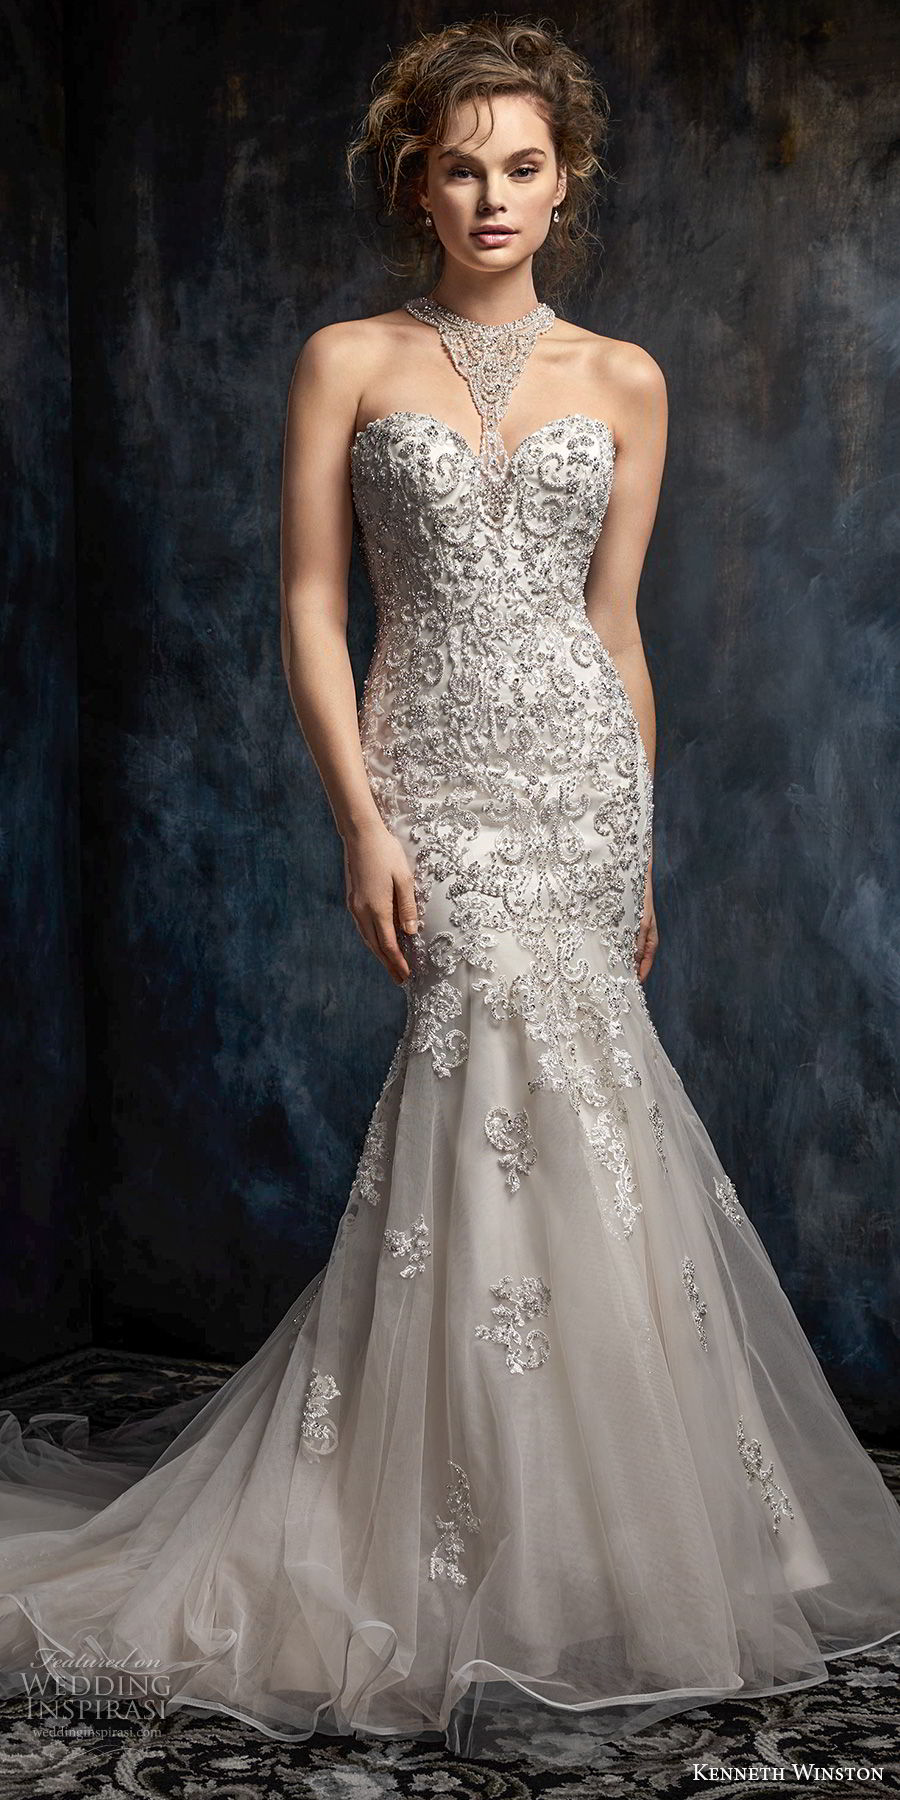 kenneth winston fall 2017 bridal strapless rasor sweetheart neckline heavily embellished beaded bodice elegant mermaid wedding dress rasor back chapel train (44) mv